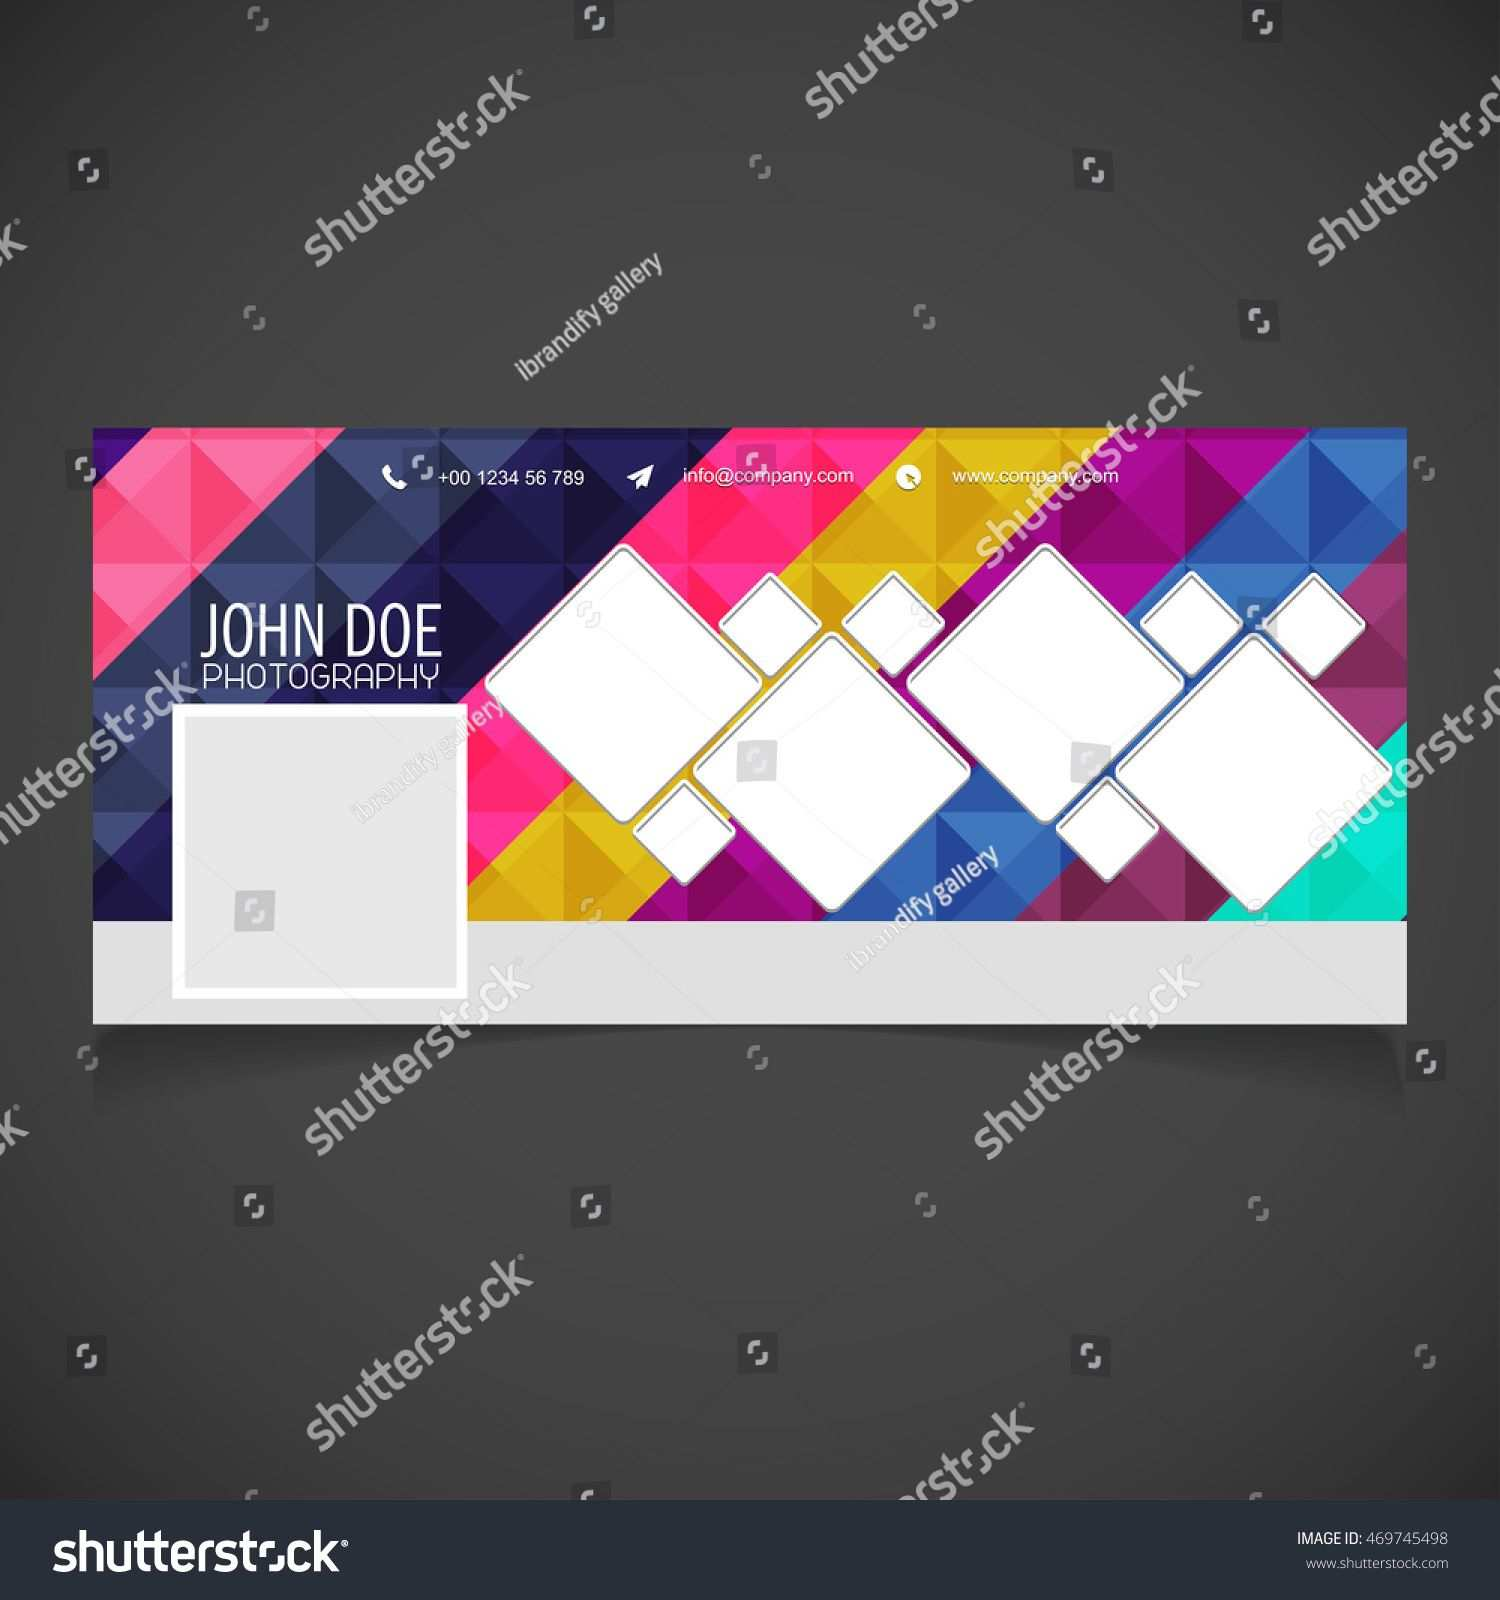 Creative Photography Banner Template Place Image Regarding